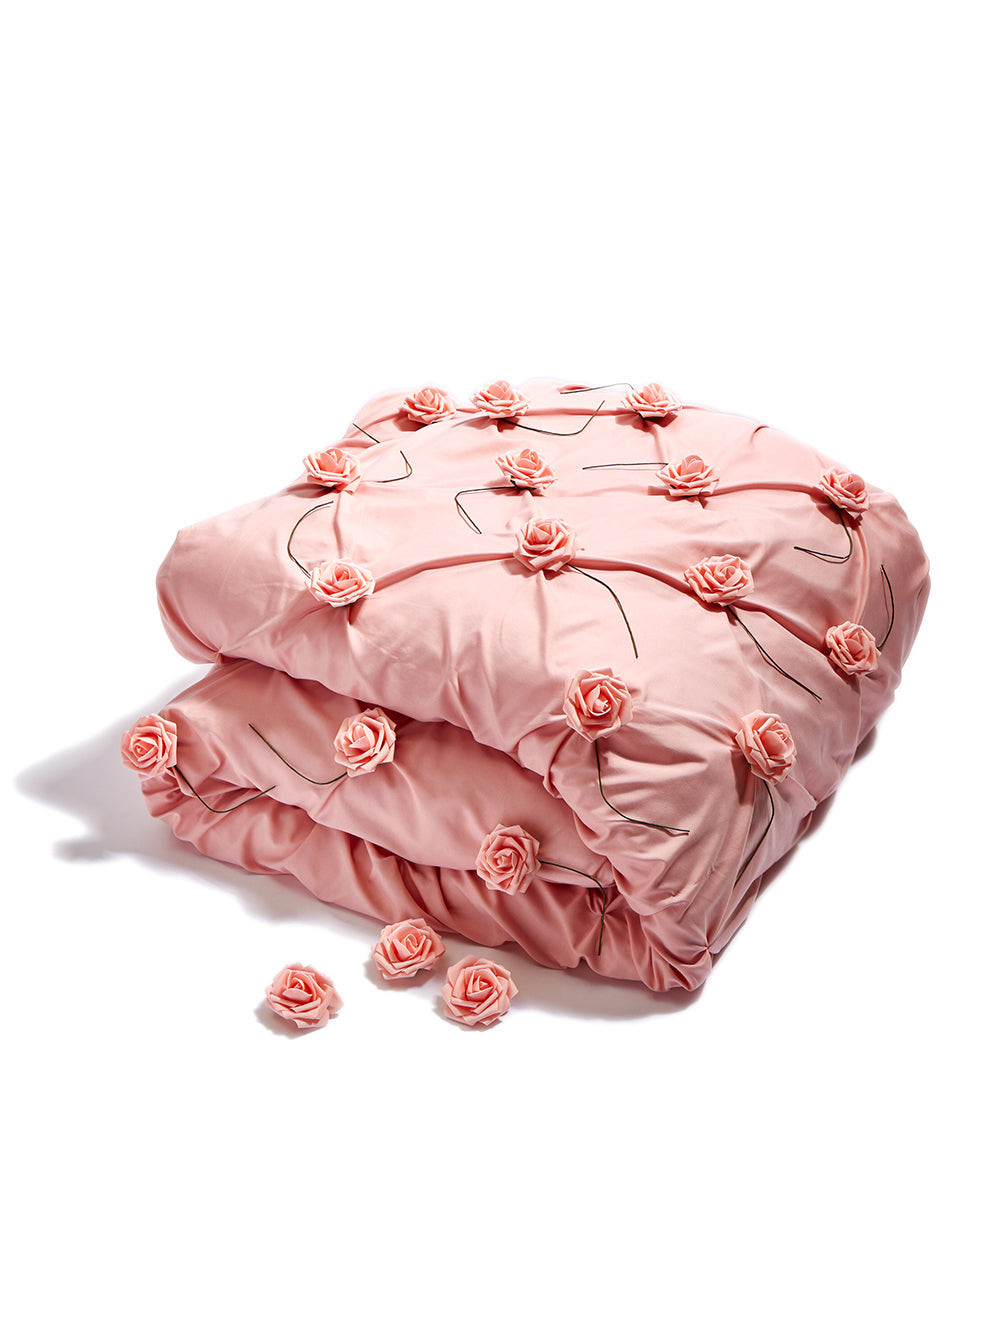 Taylored Comforter - Twin XL